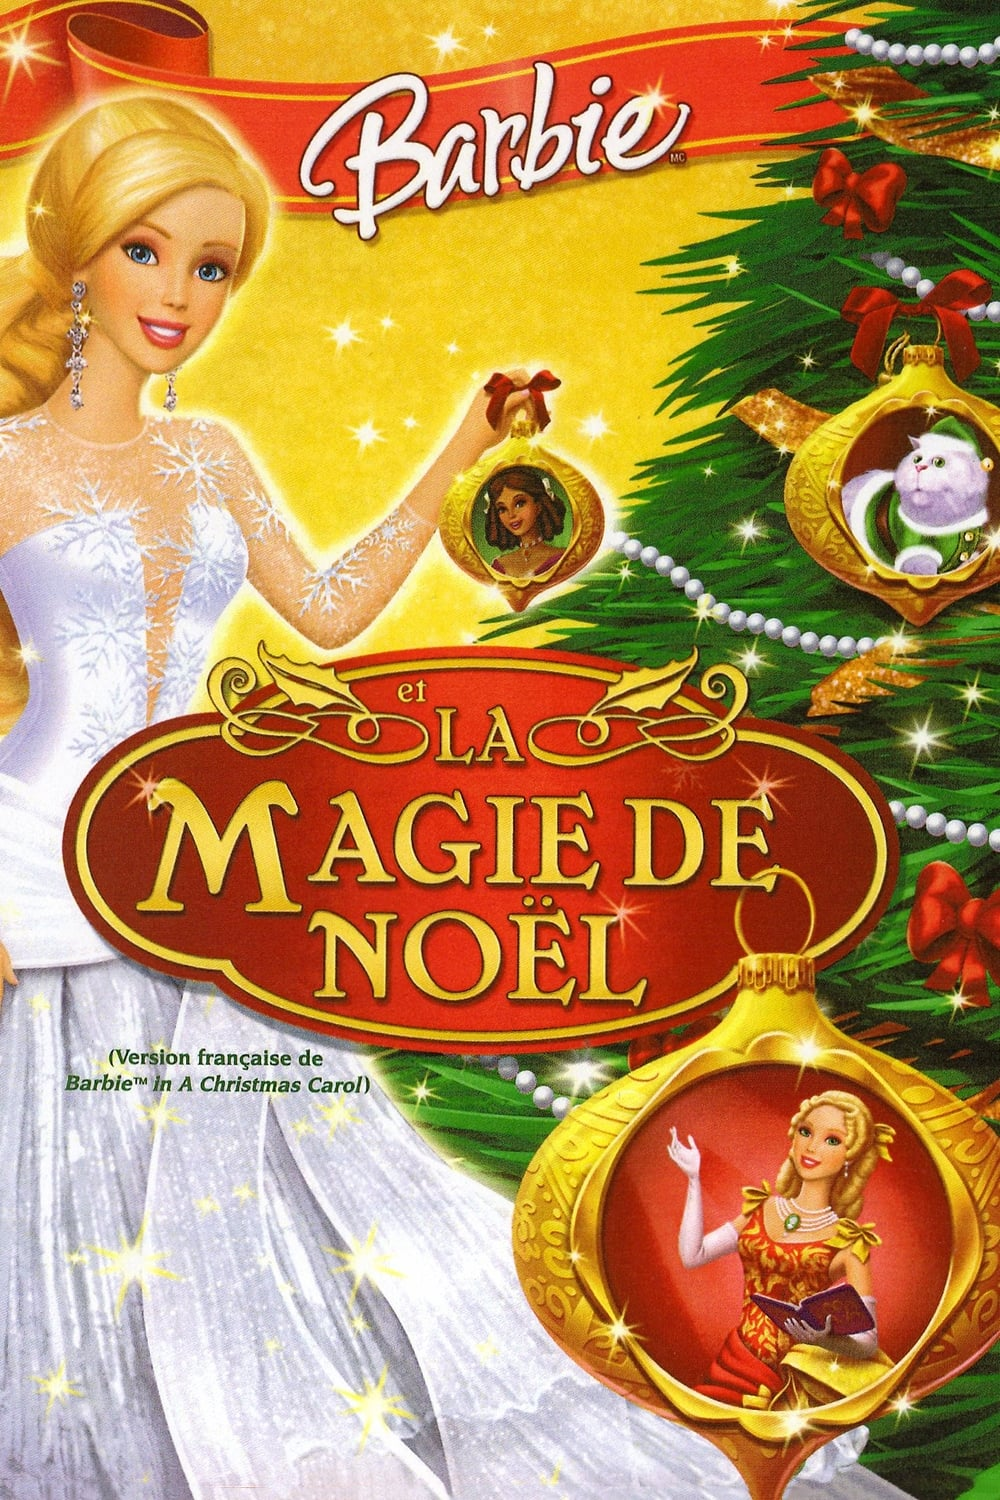 Watch Barbie in 'A Christmas Carol' (2008) Full Movie Online Free - Watch Movies Online HD Quality